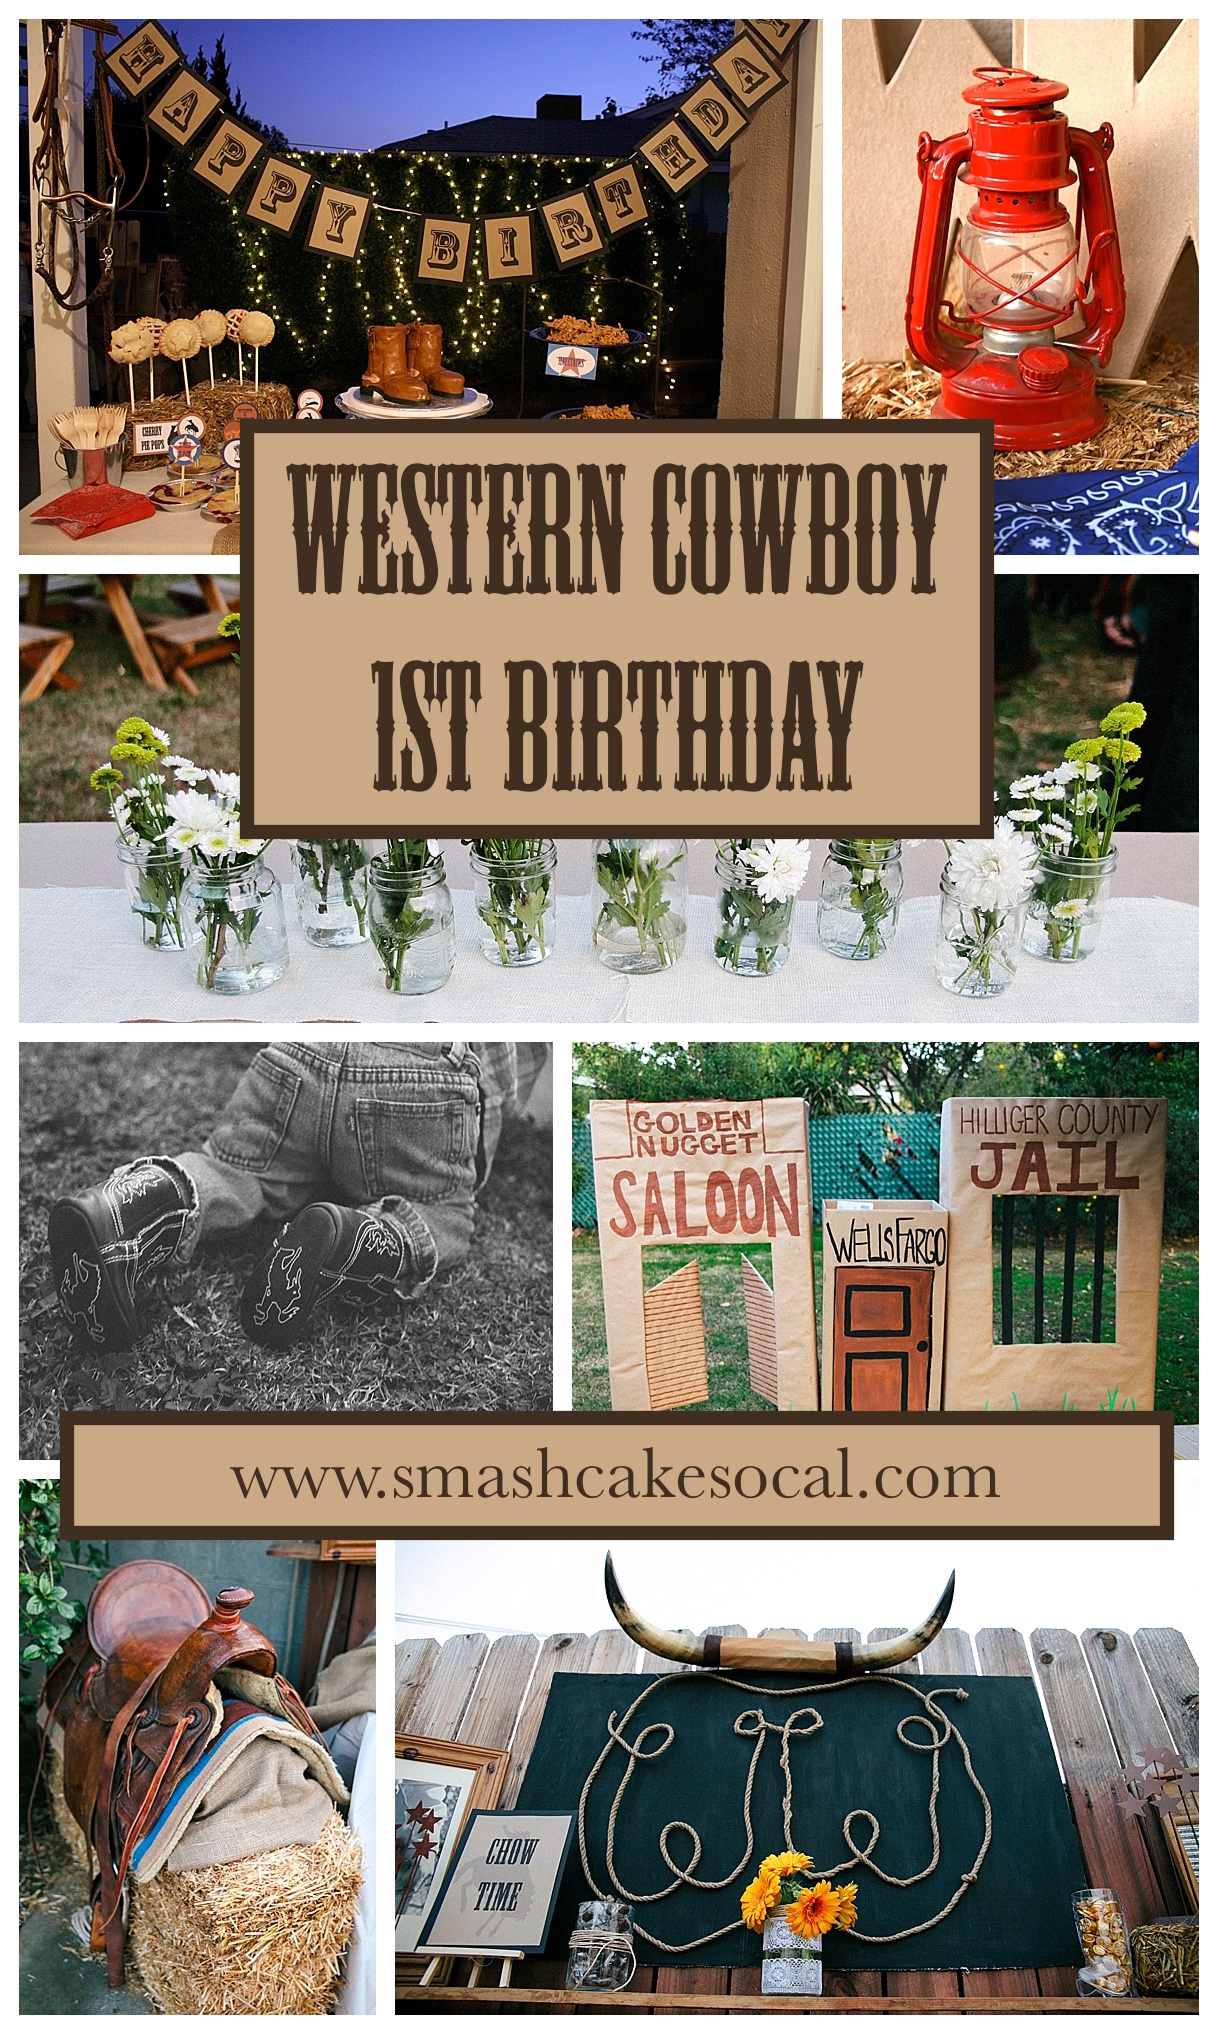 Diy Western Cowboy Twins 1st Birthday Party Free Digital Download